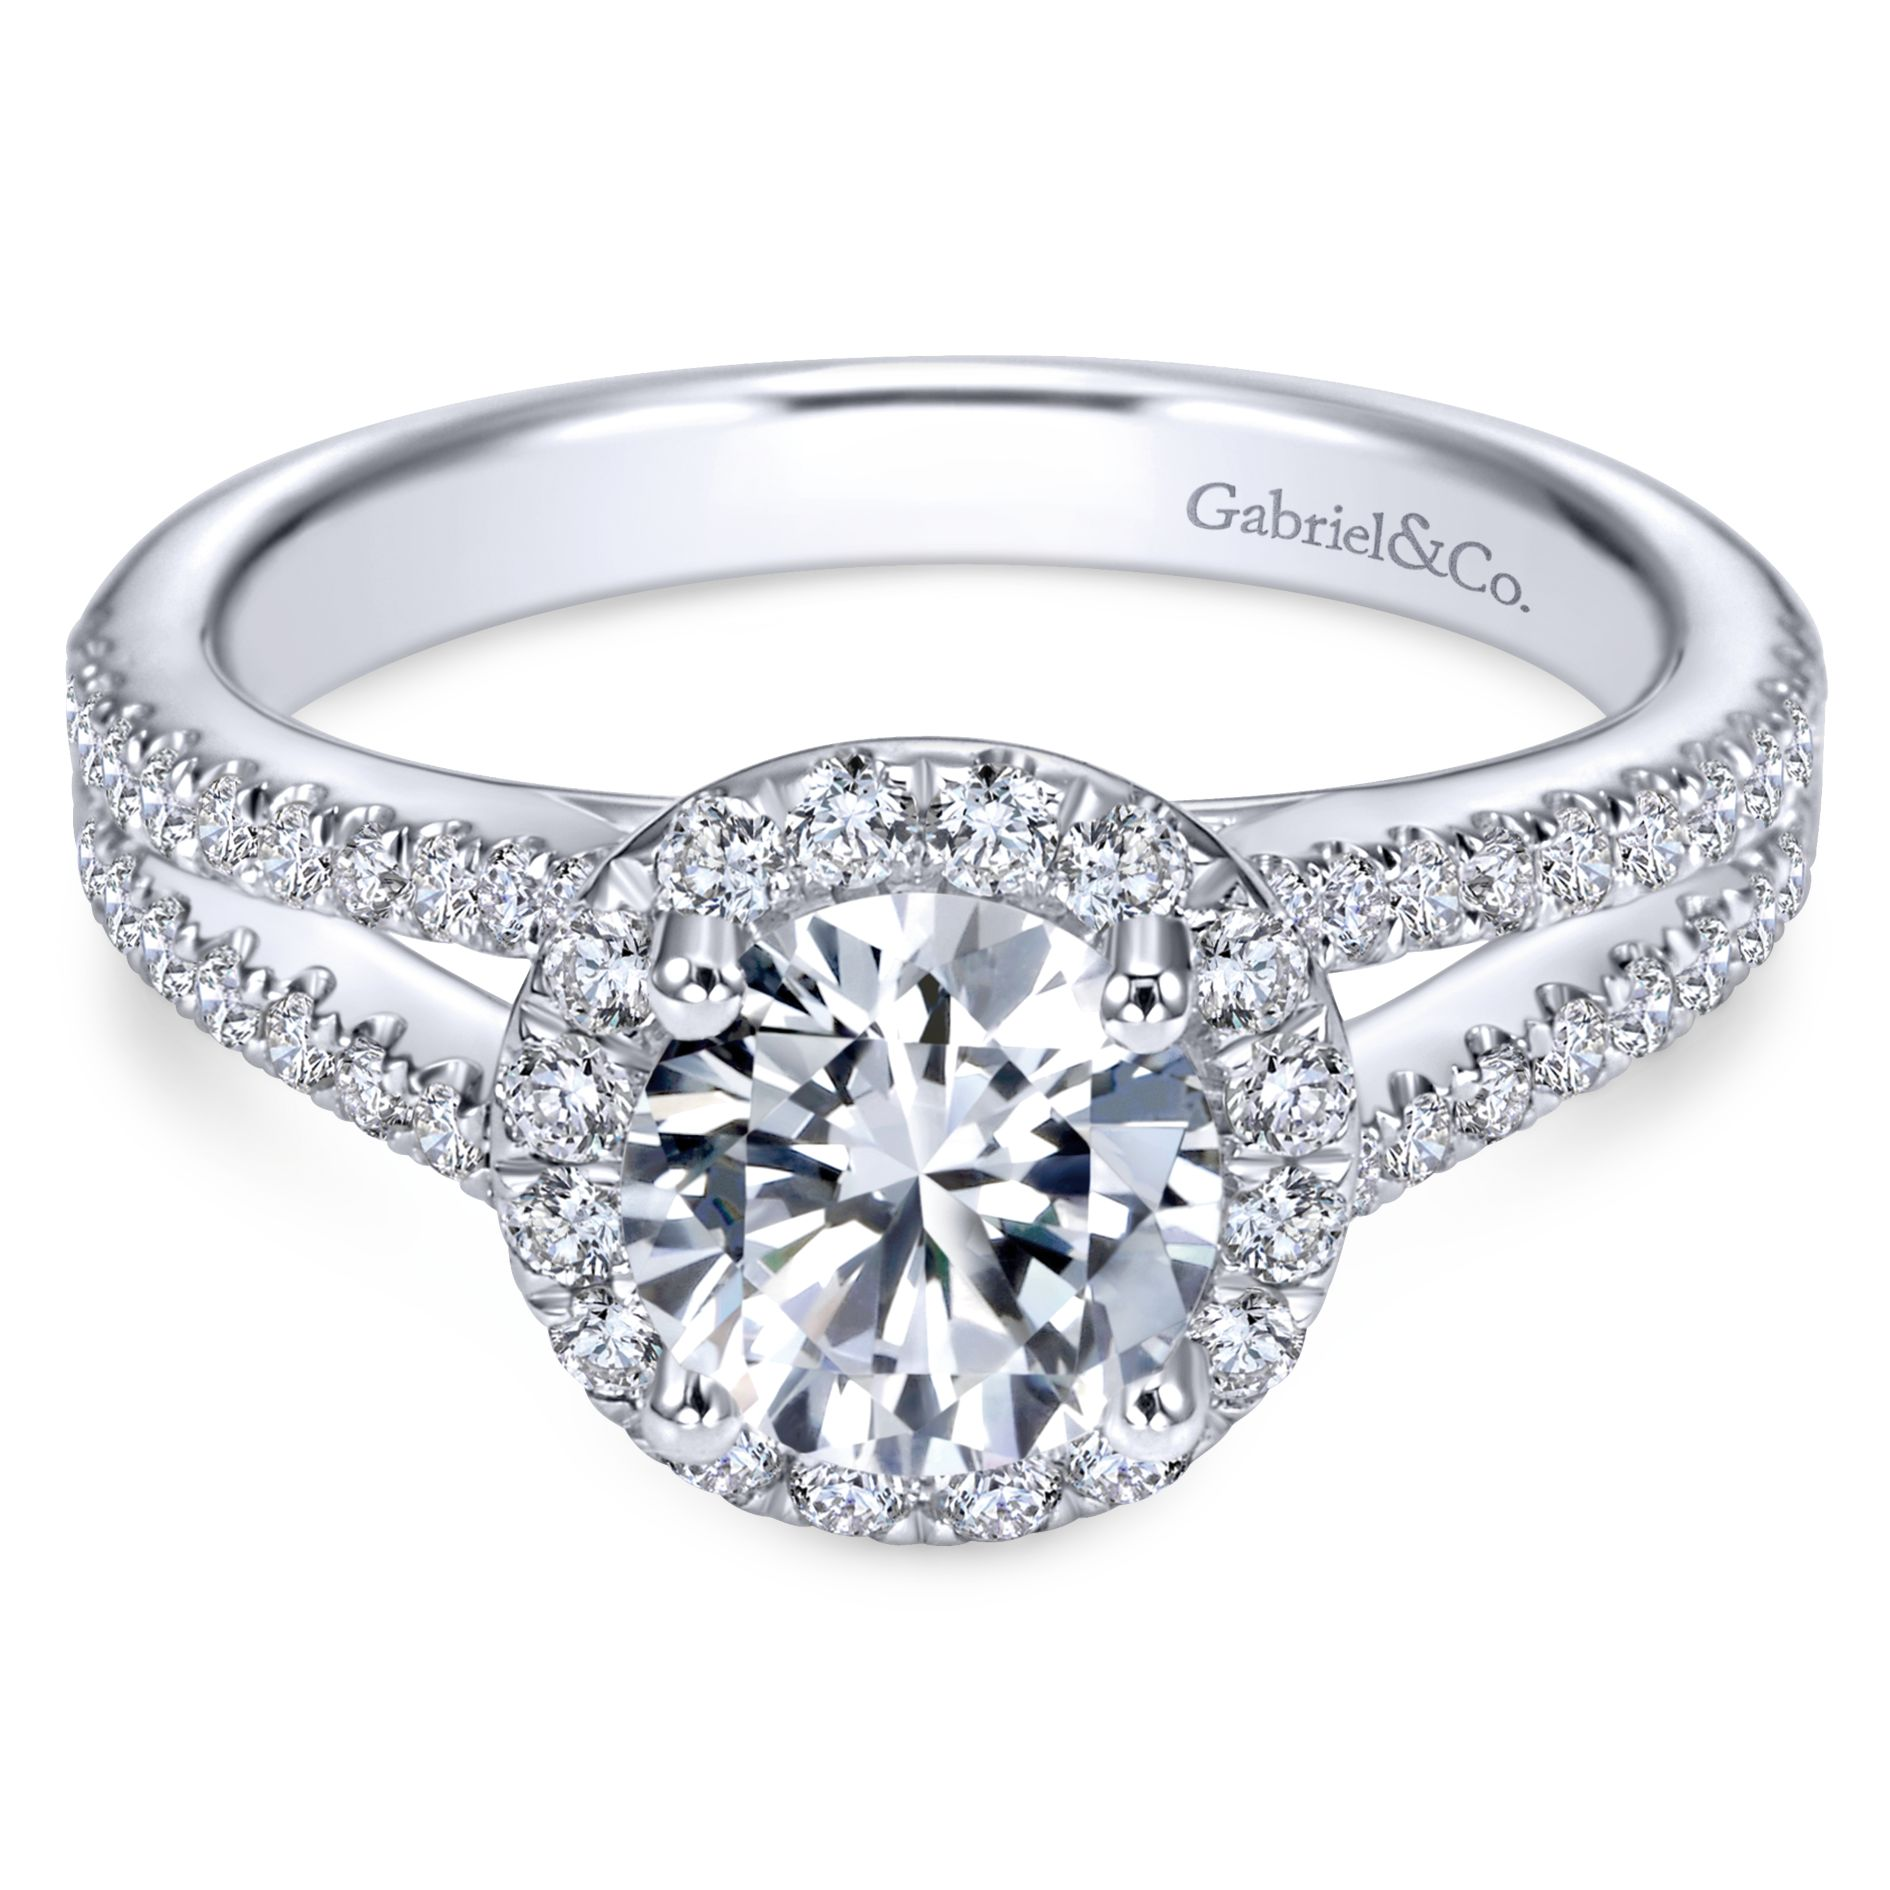 Engagement Rings - WHITE GOLD ROUND HALO DIAMOND ENGAGEMENT RING